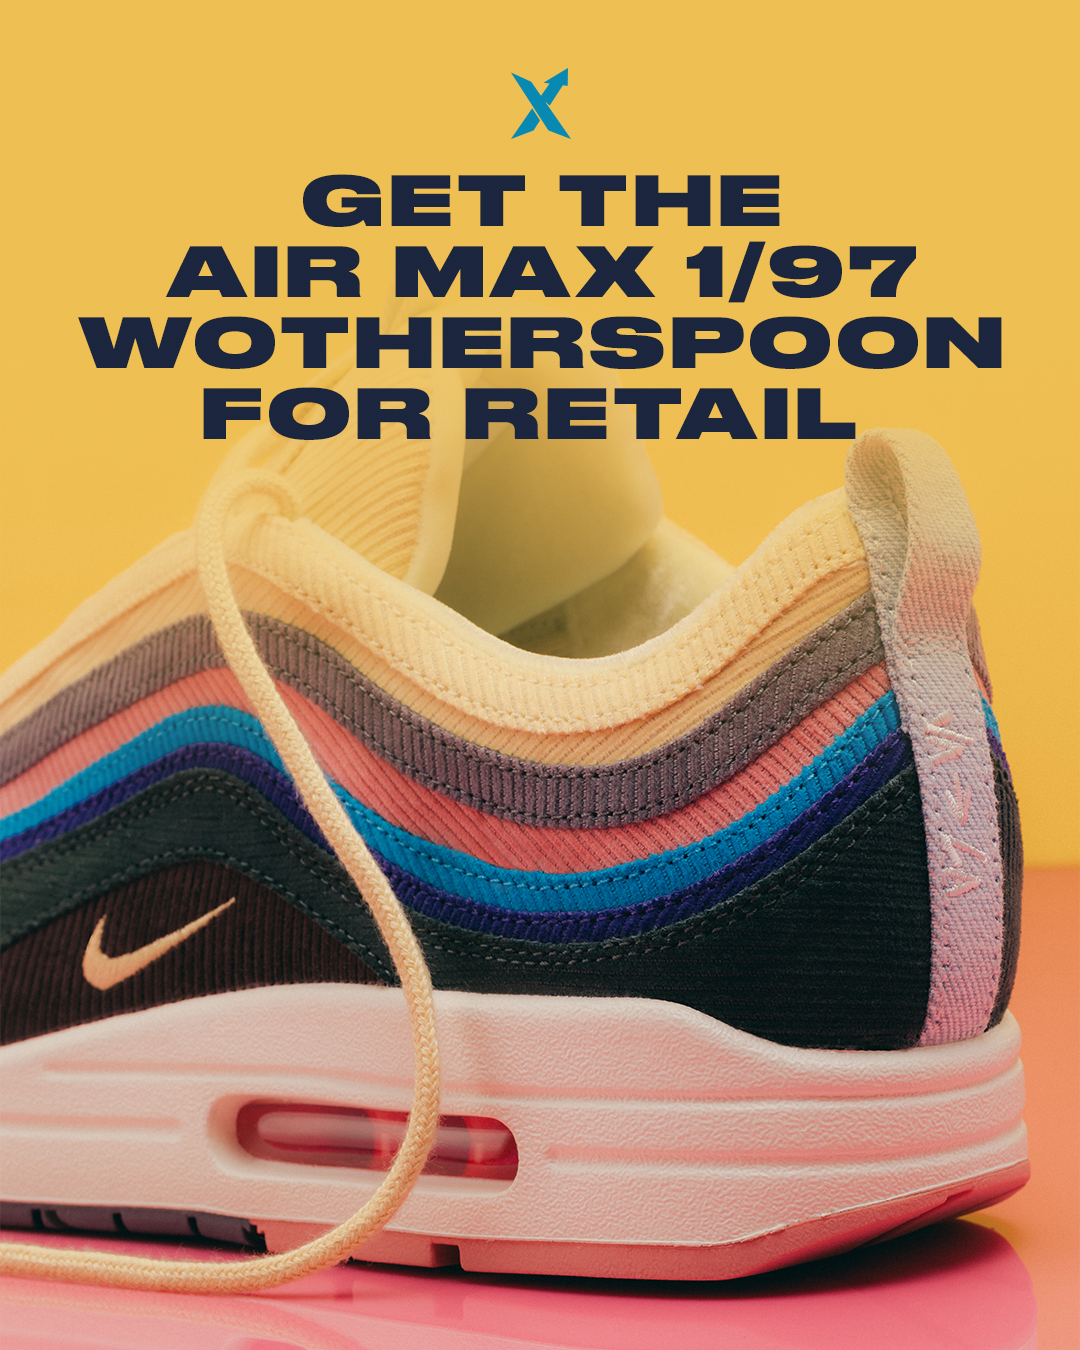 Sean Wotherspoon Air Max 1/97s